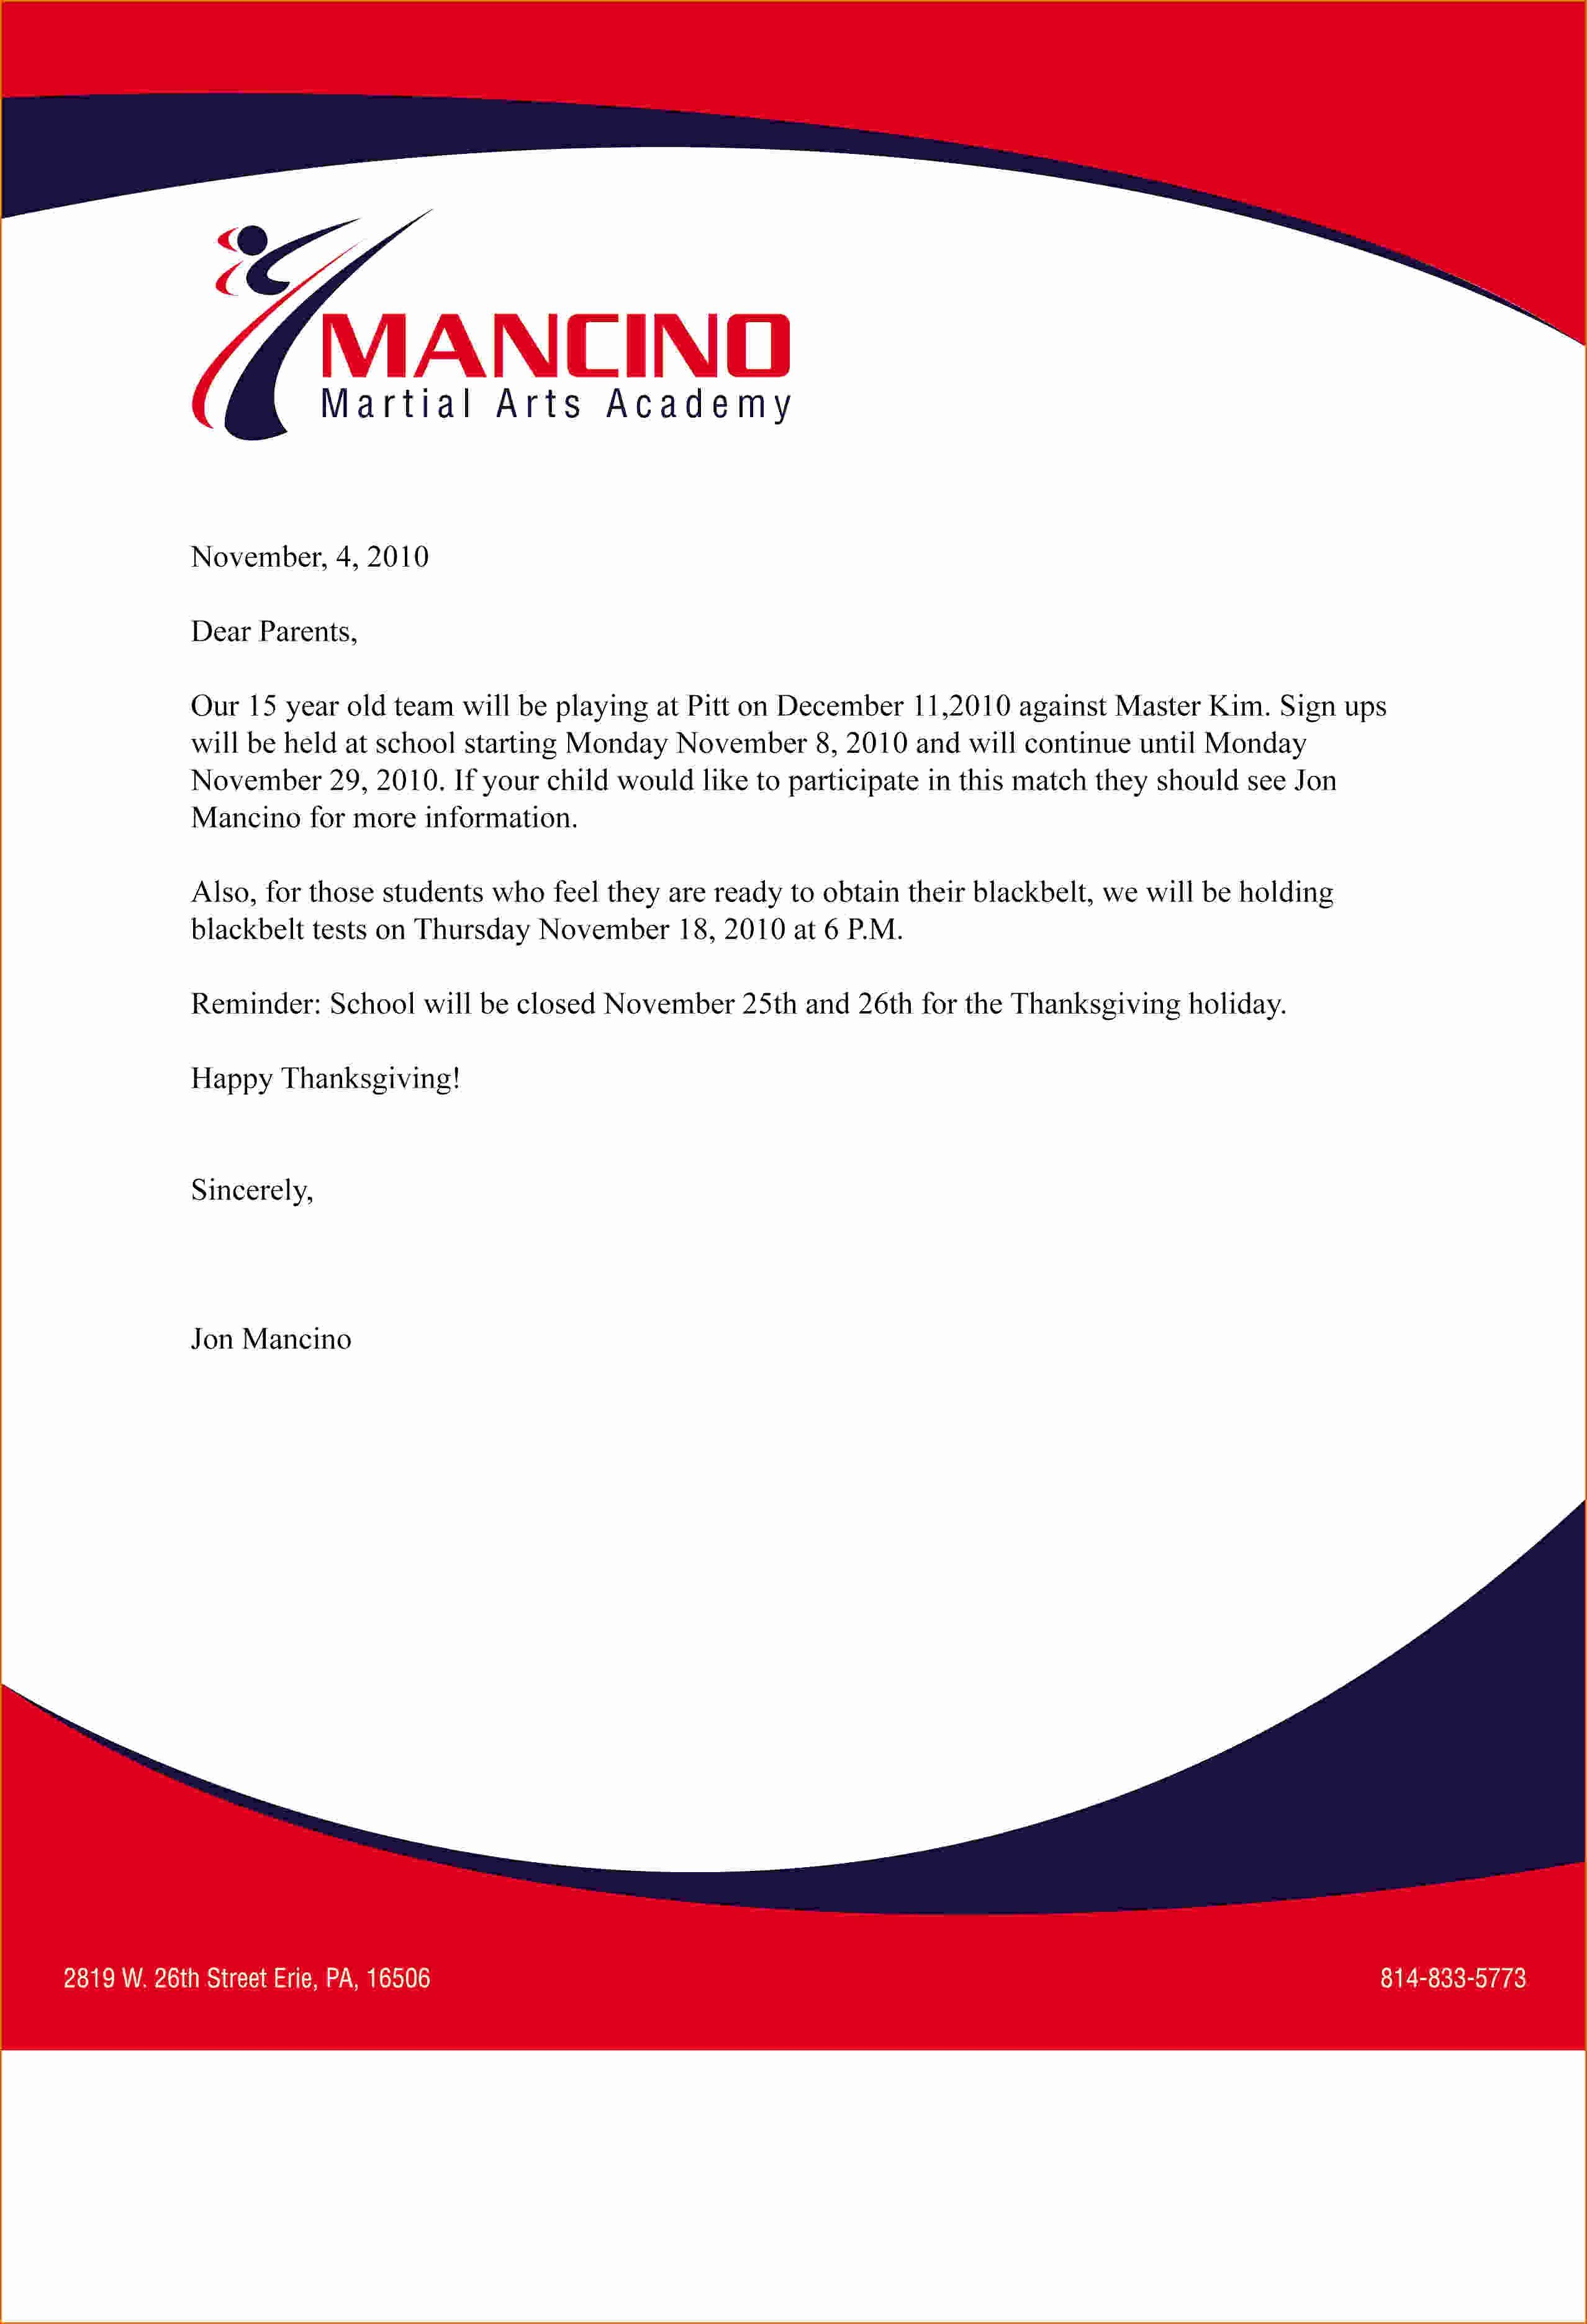 Examples Of Letterheads For Business Unique Examples Letterheads For Business Letters Business Letter Template Letter Template Word Business Letter Example Examples of letterheads for business